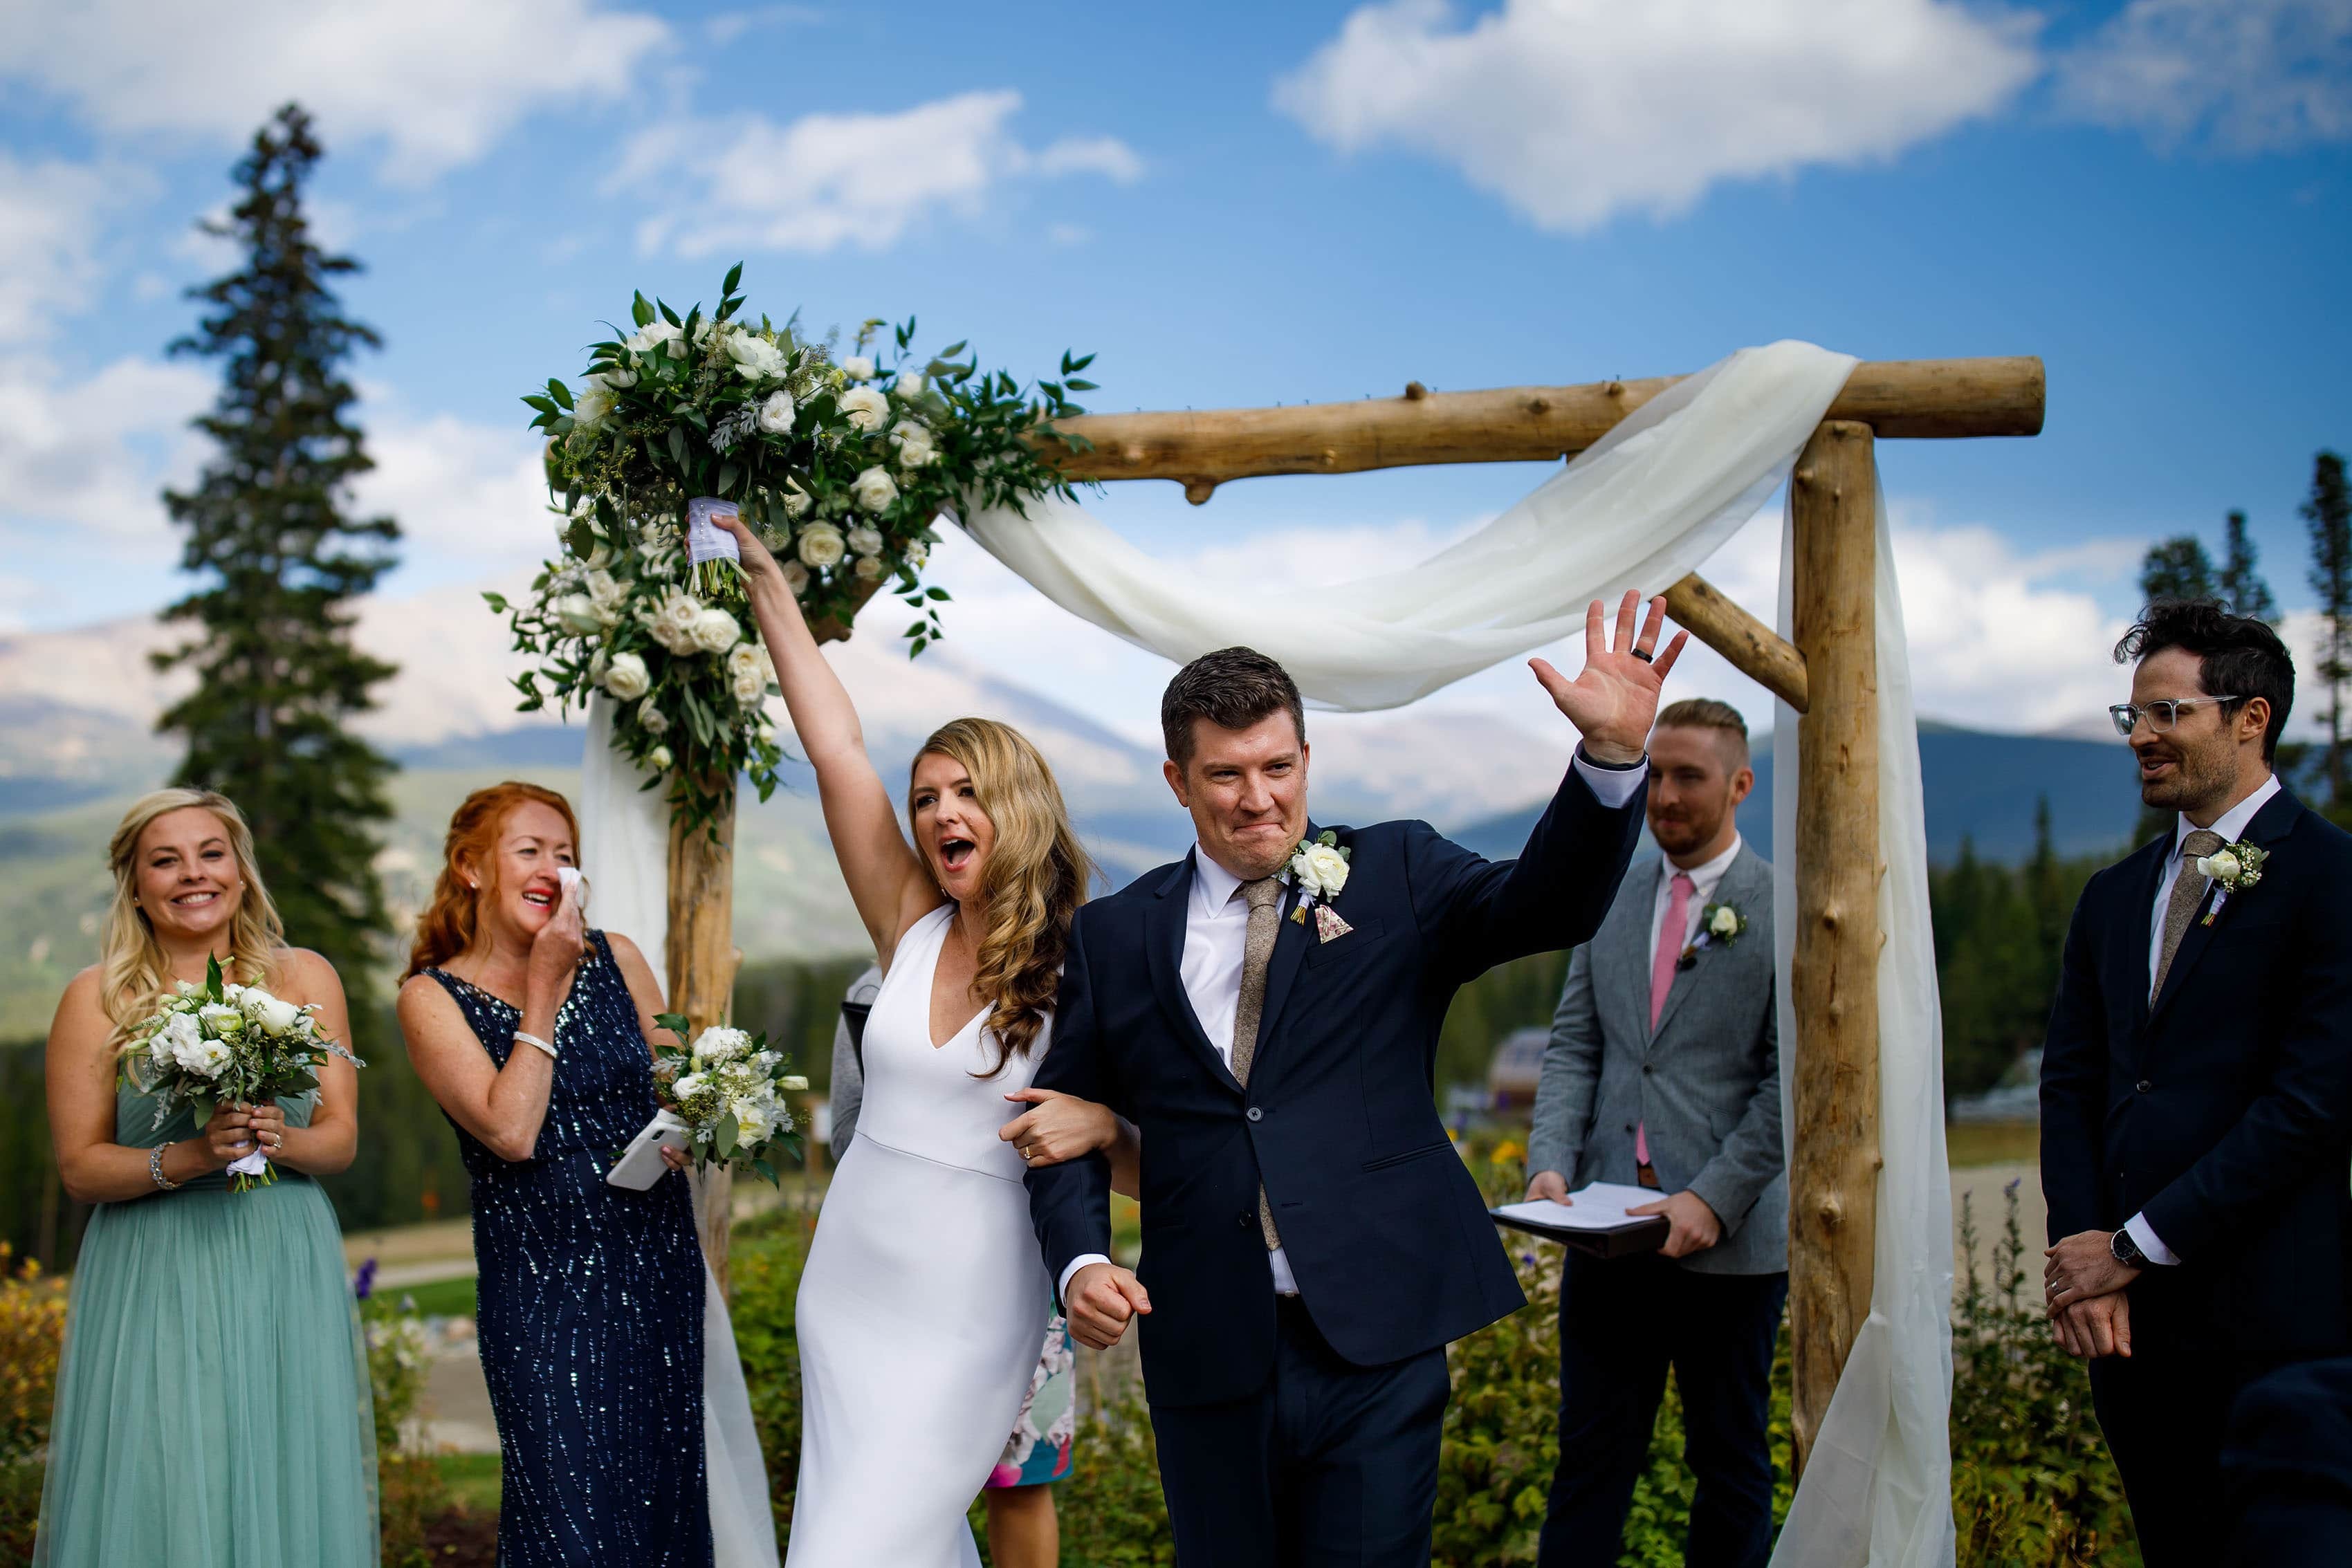 The bride and groom celebrate in front of a wooden arch with flowers at TenMile